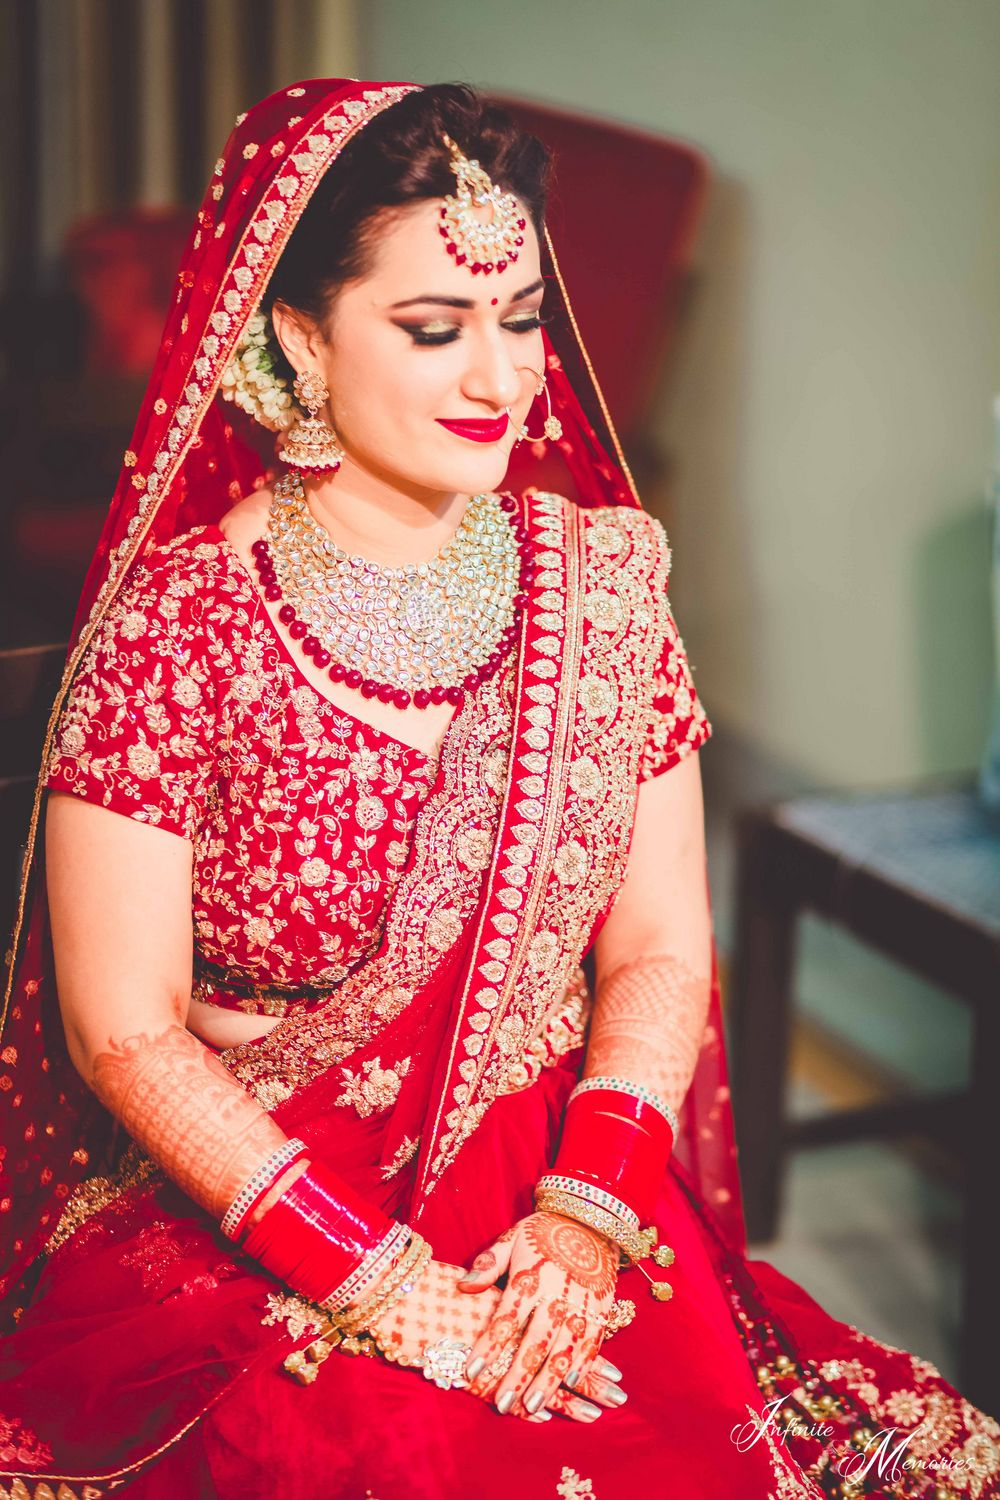 Photo From Punjabi Bride_Sharin, looking like a dream on her Wedding Day - By Nivritti Chandra